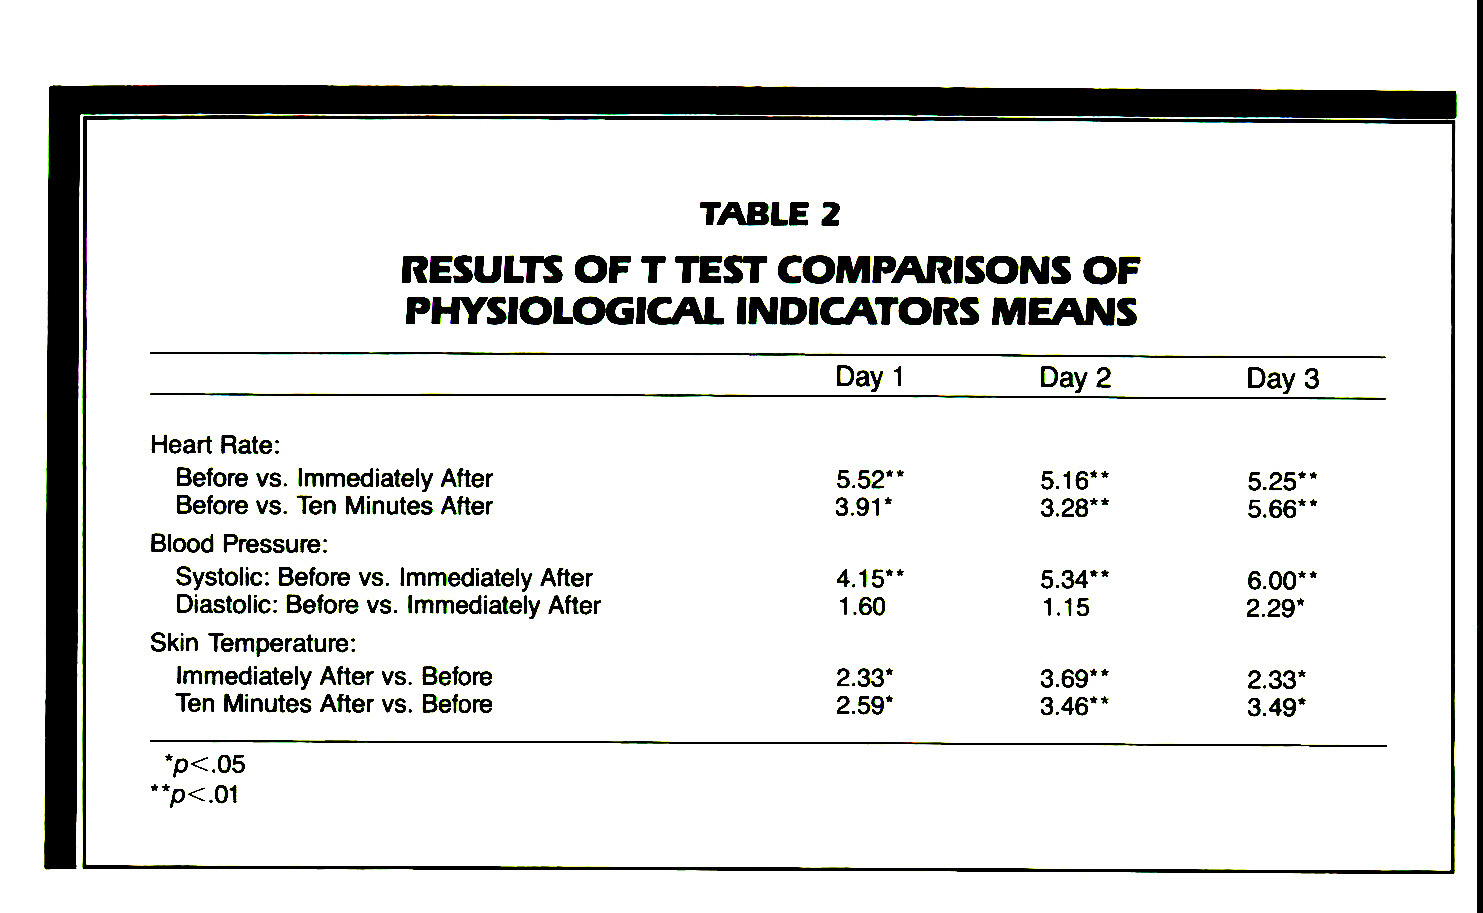 TABLE 2RESULTS OF T TEST COMPARISONS OF PHYSIOLOGICAL INDICATORS MEANS